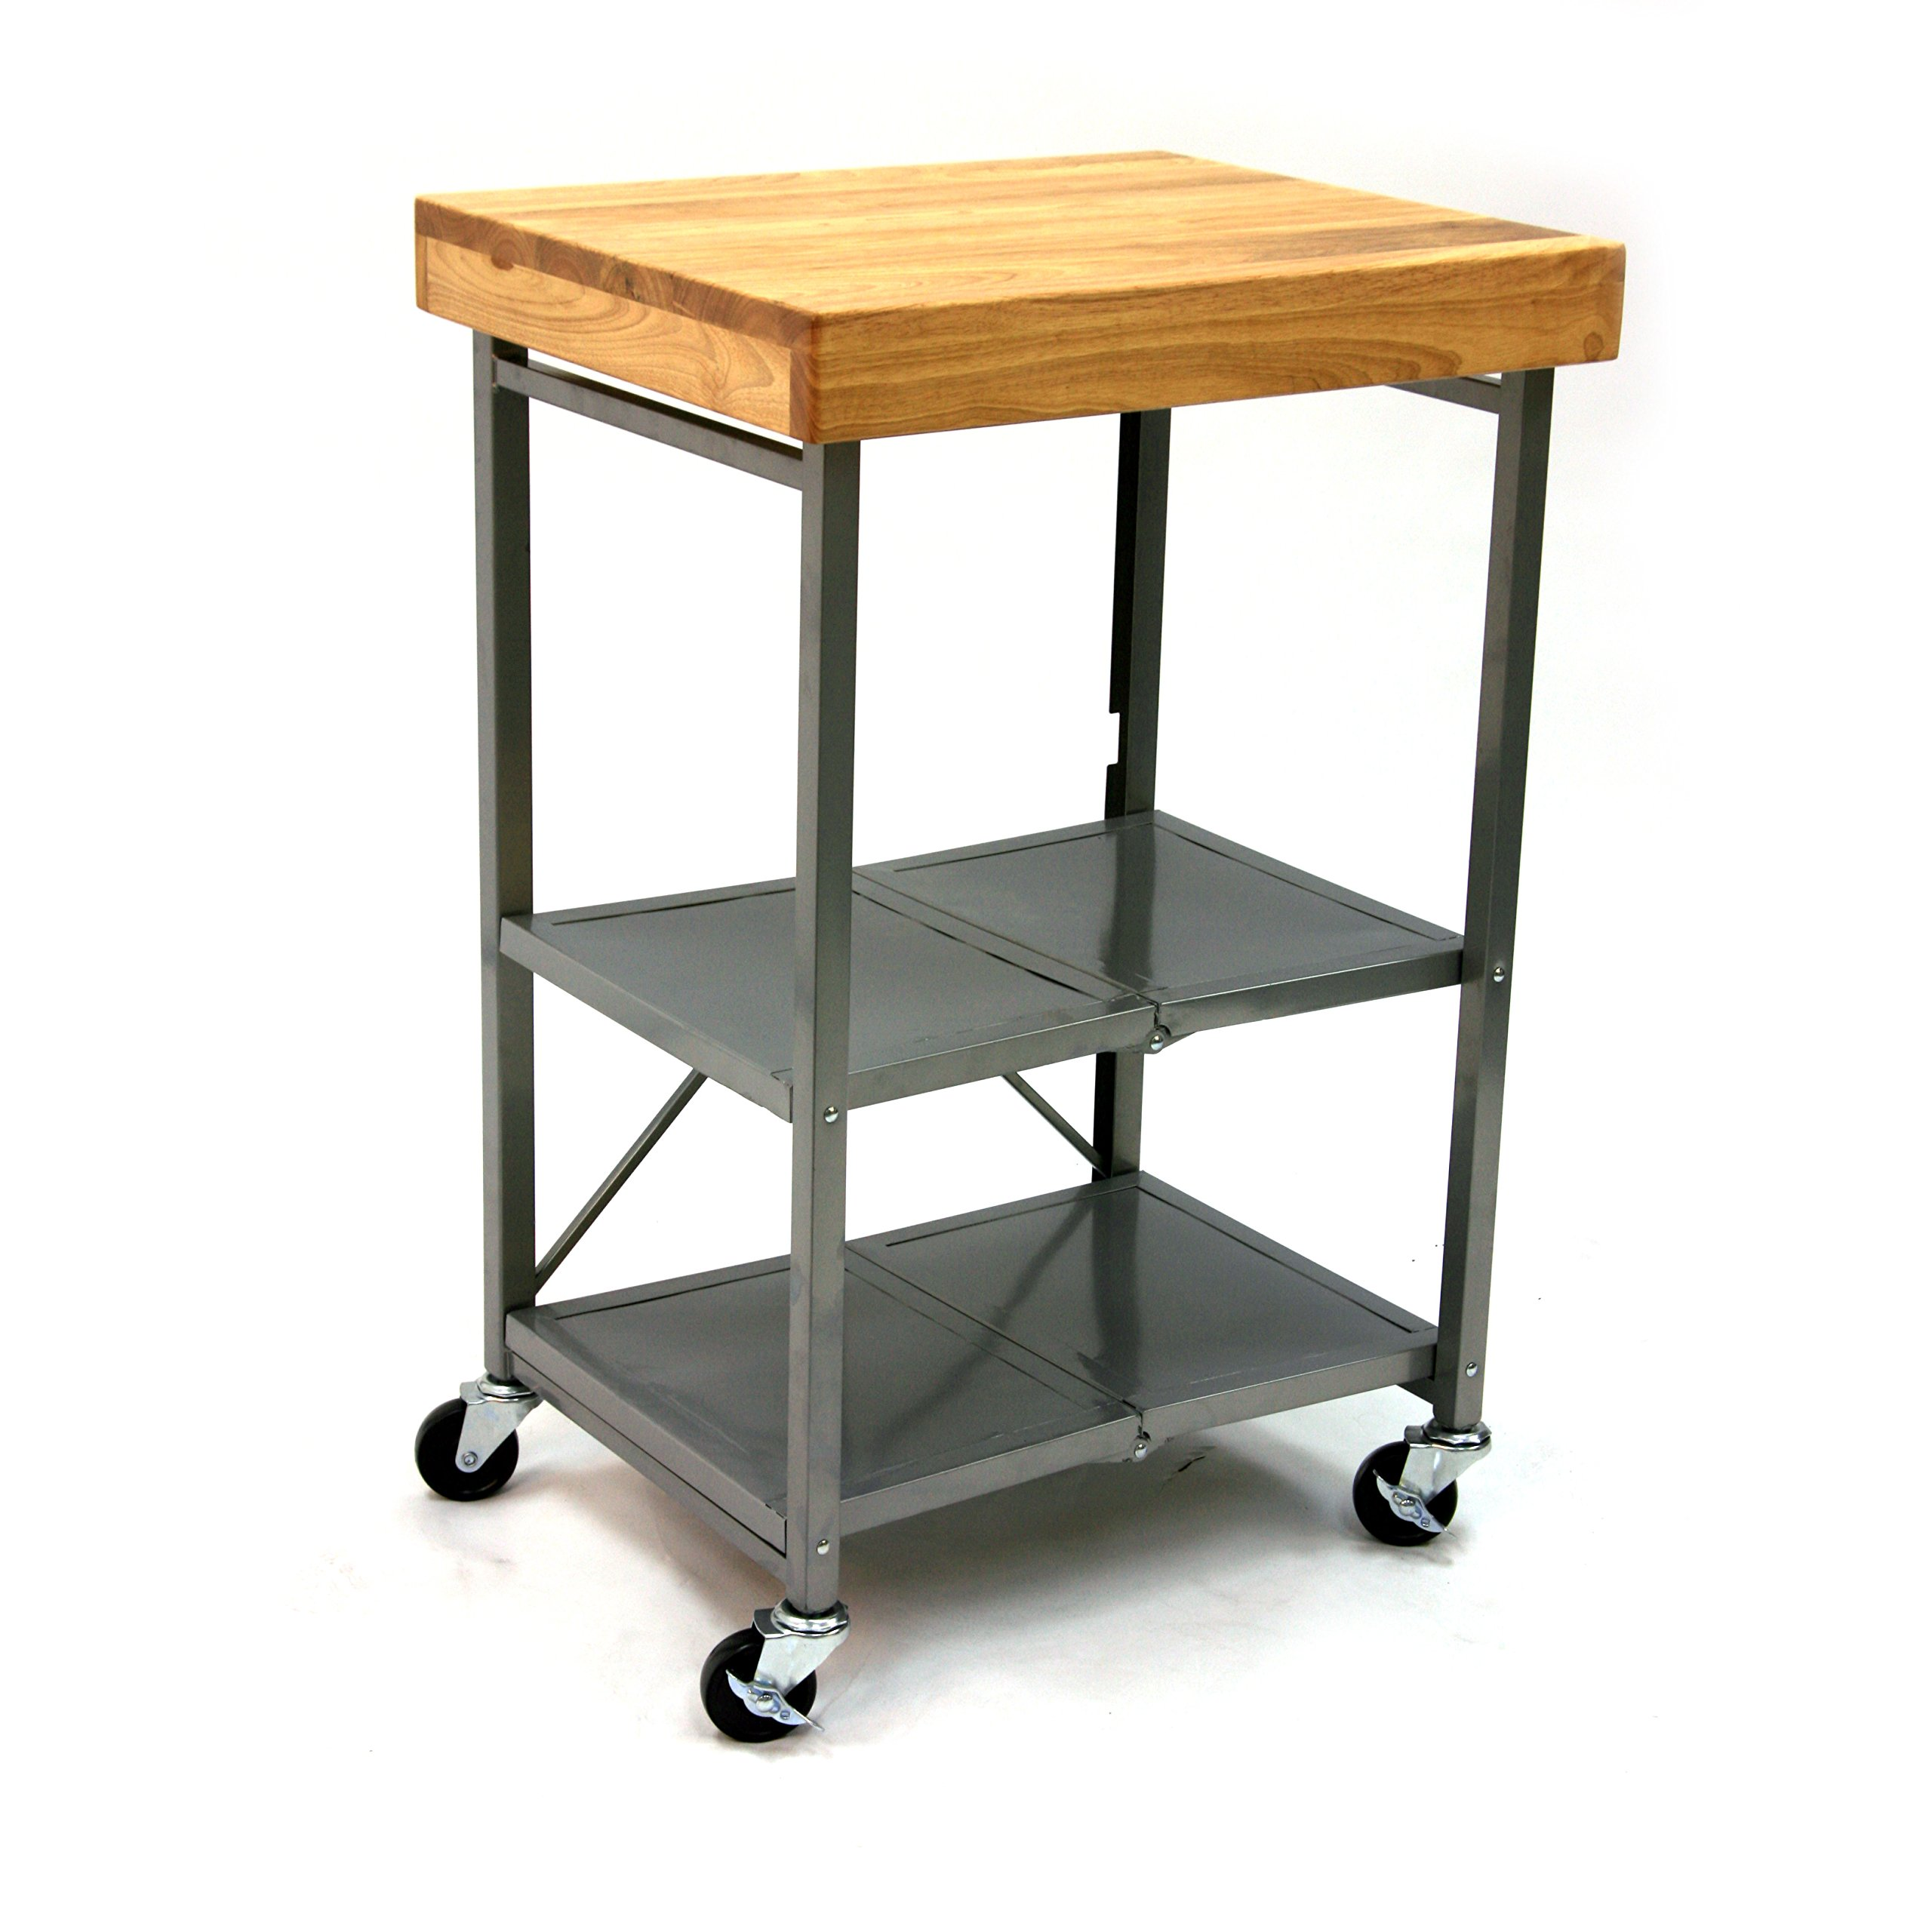 Origami Foldable Rolling Kitchen Island Cart, Food Serving Cart, 3-Tier Storage Shelf with Wood Top, Microwave Stand, Heavy Duty, Silver by Origami (Image #8)